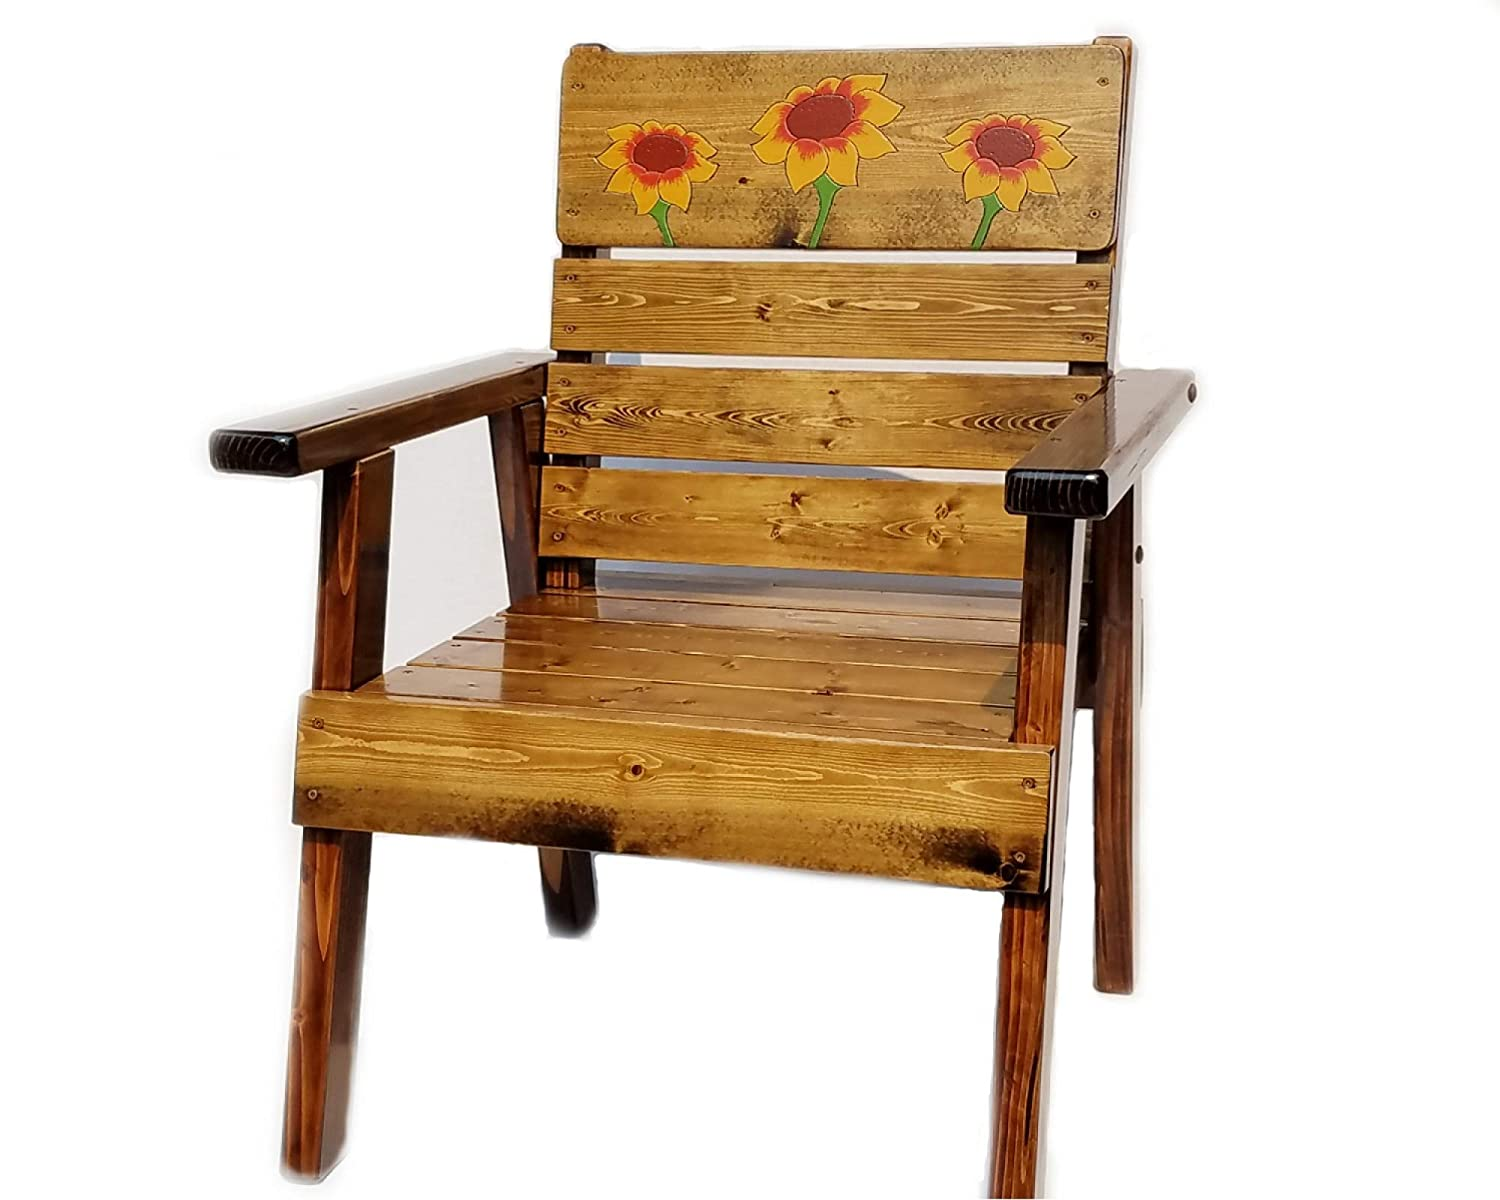 Patio, Lawn or Garden Outdoor Wood Chair with Sunflower Engraved and Painted Art